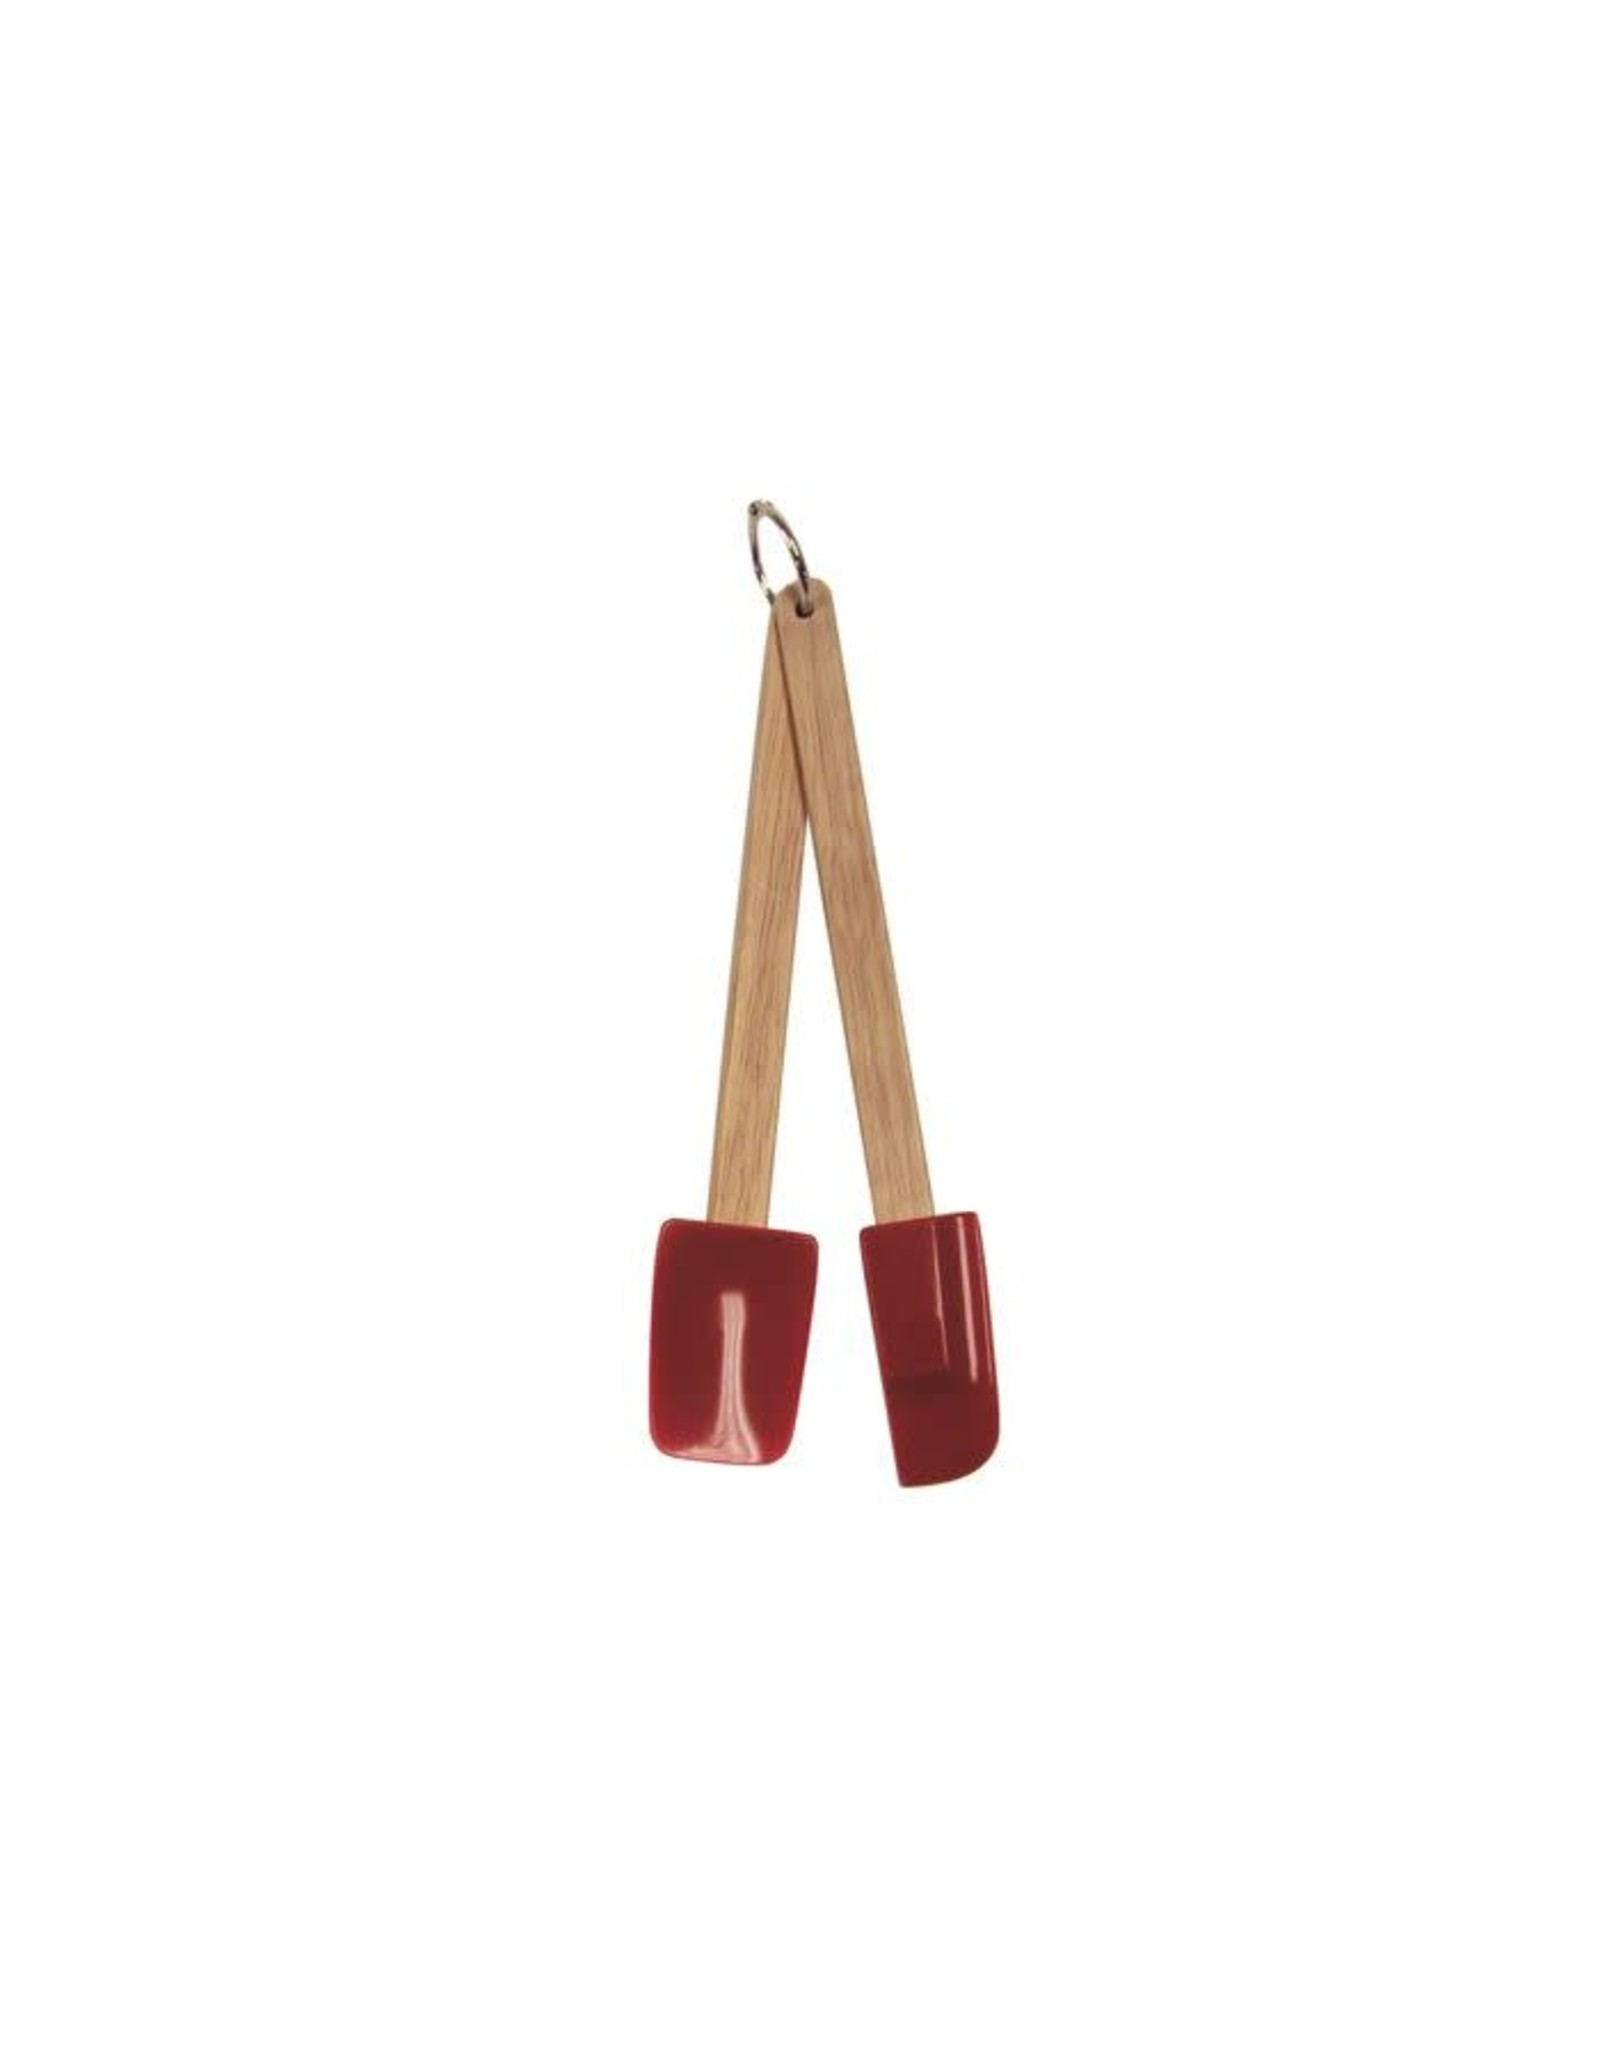 Norpro Mini Spatula, Red, S/2